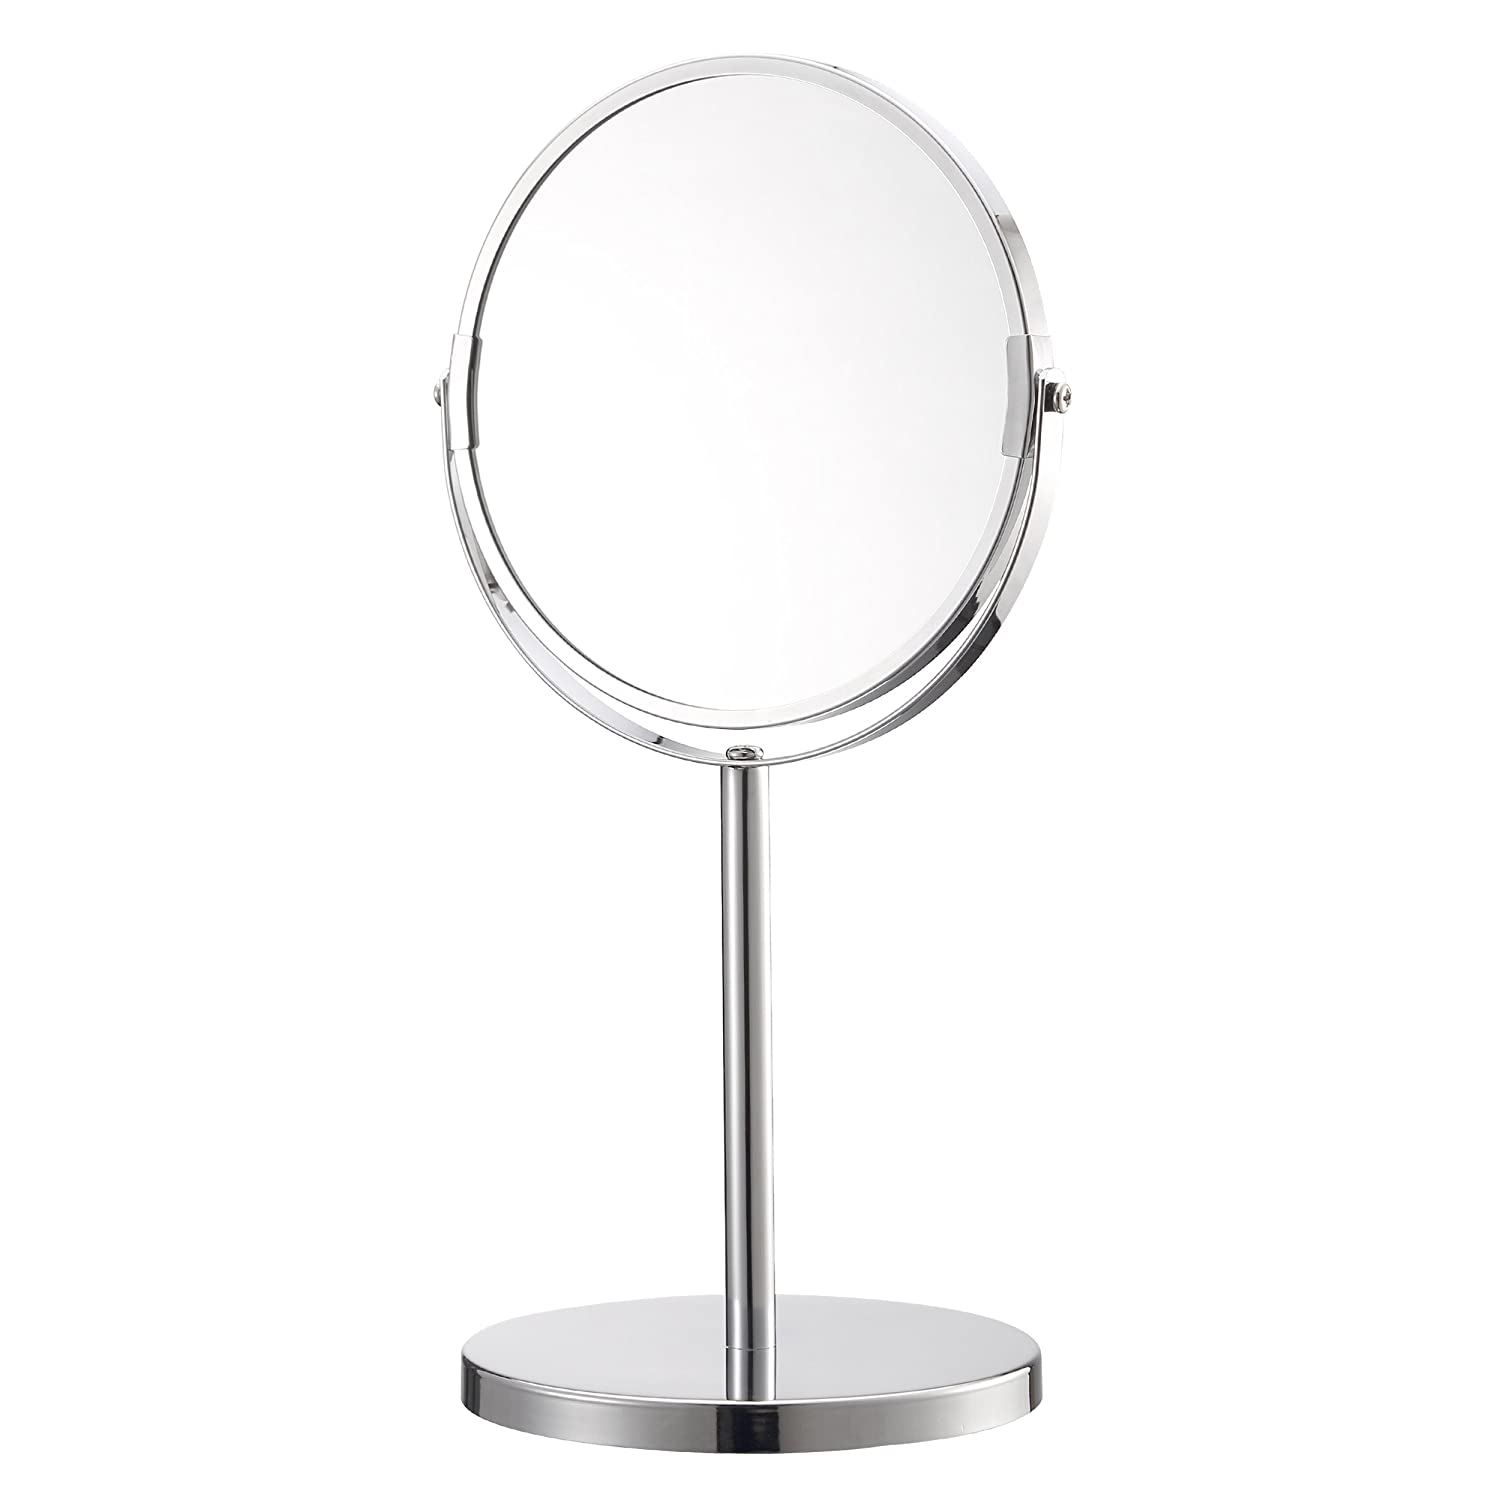 Kendan - Cosmetic Make Up Mirror, 3X Magnifying Vanity Table Shaving Mirror - Stainless Steel